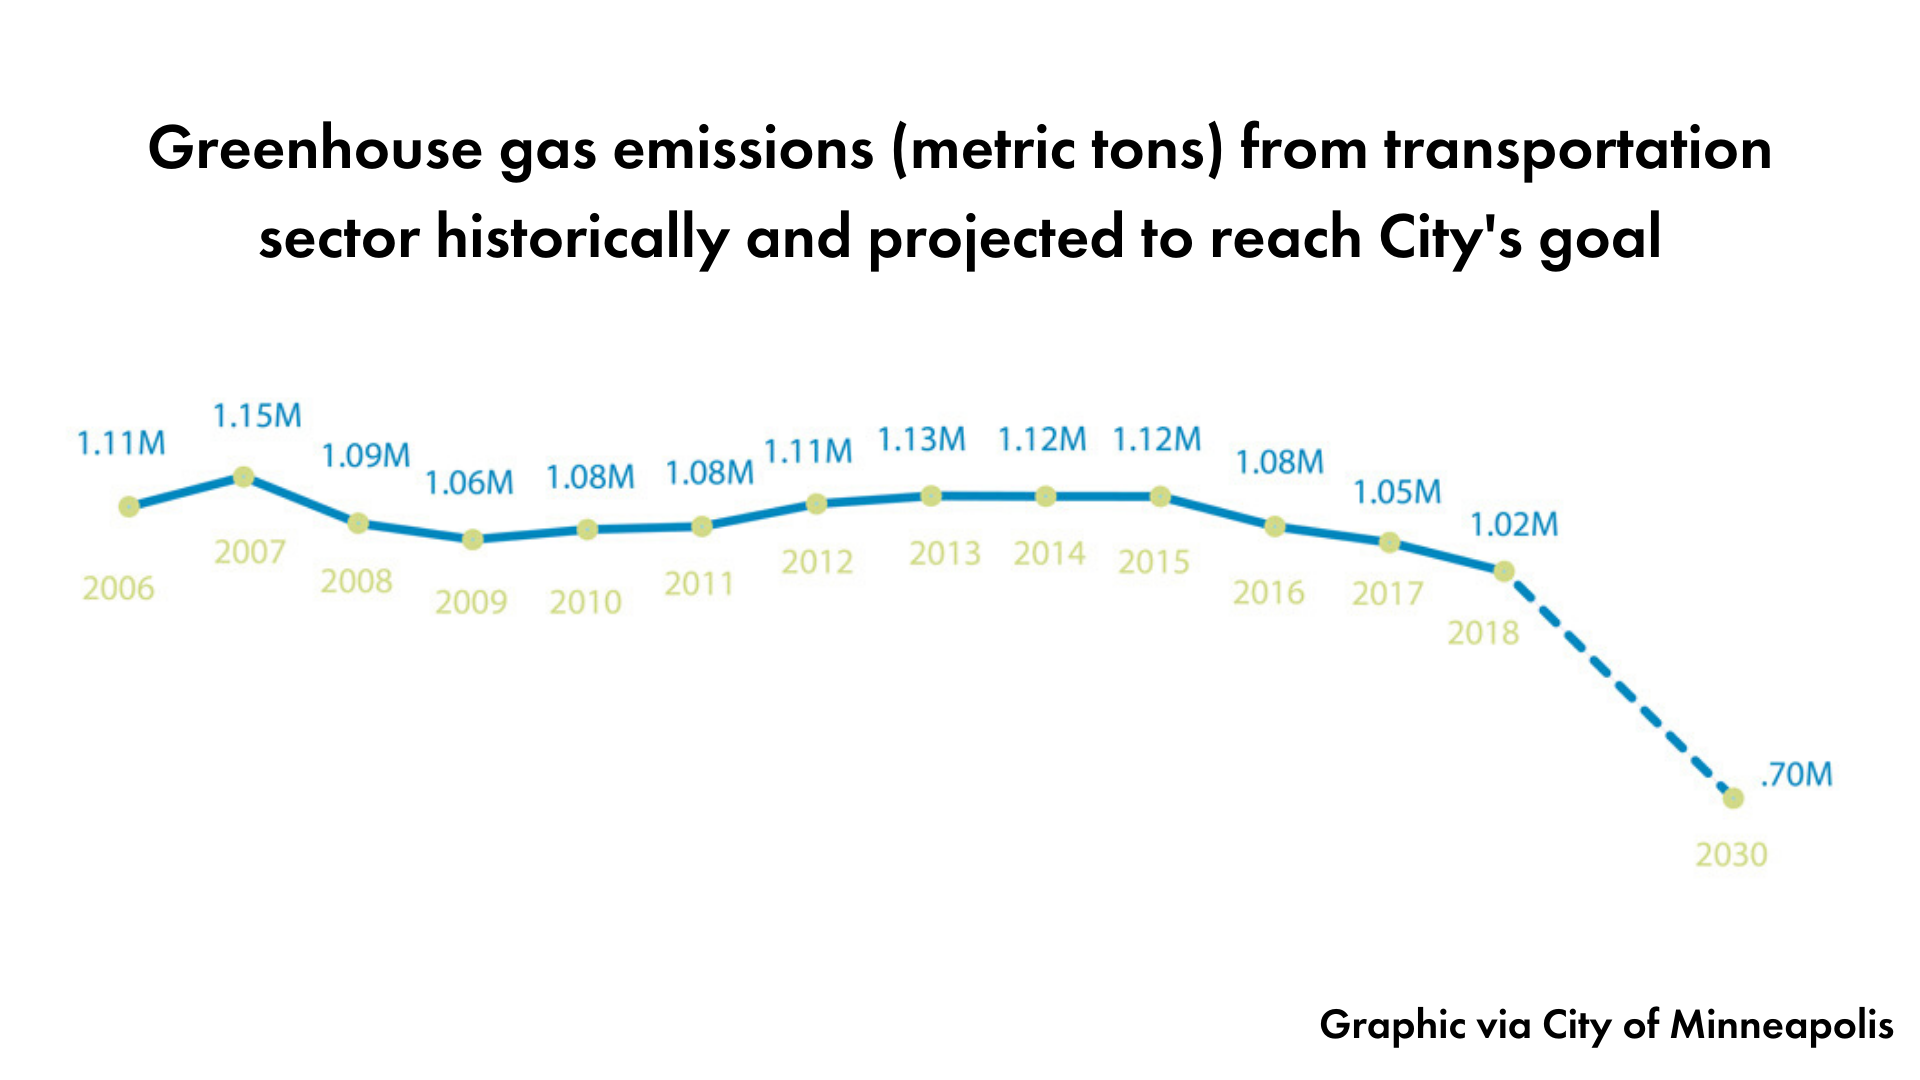 Graph from the city showing a sharp projected decline in greenhouse gas emissions from transportation by 2030